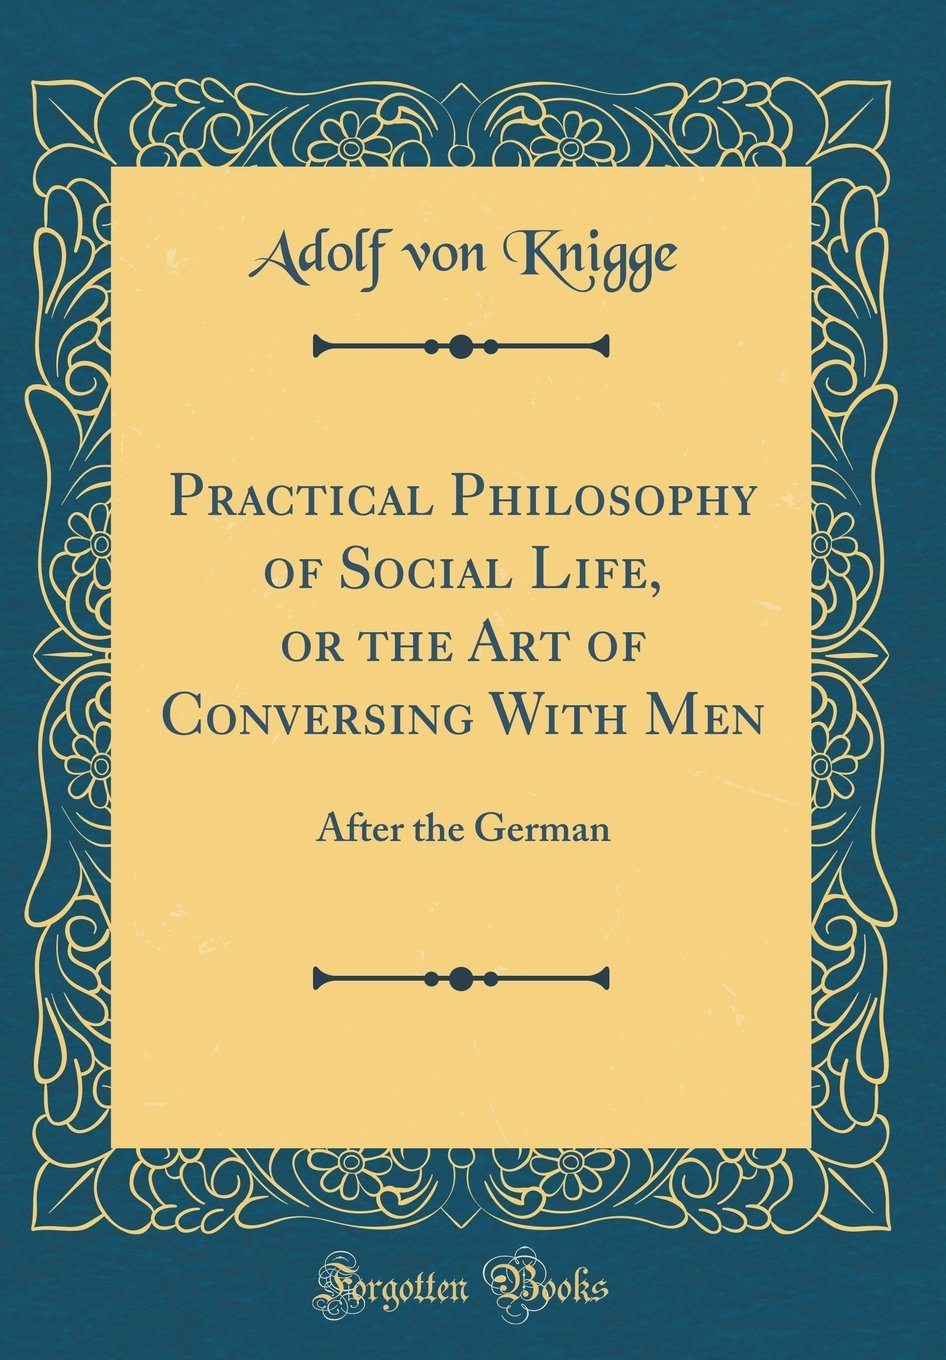 Practical Philosophy of Social Life, or the Art of Conversing with Men: After the German (Classic Reprint) pdf epub